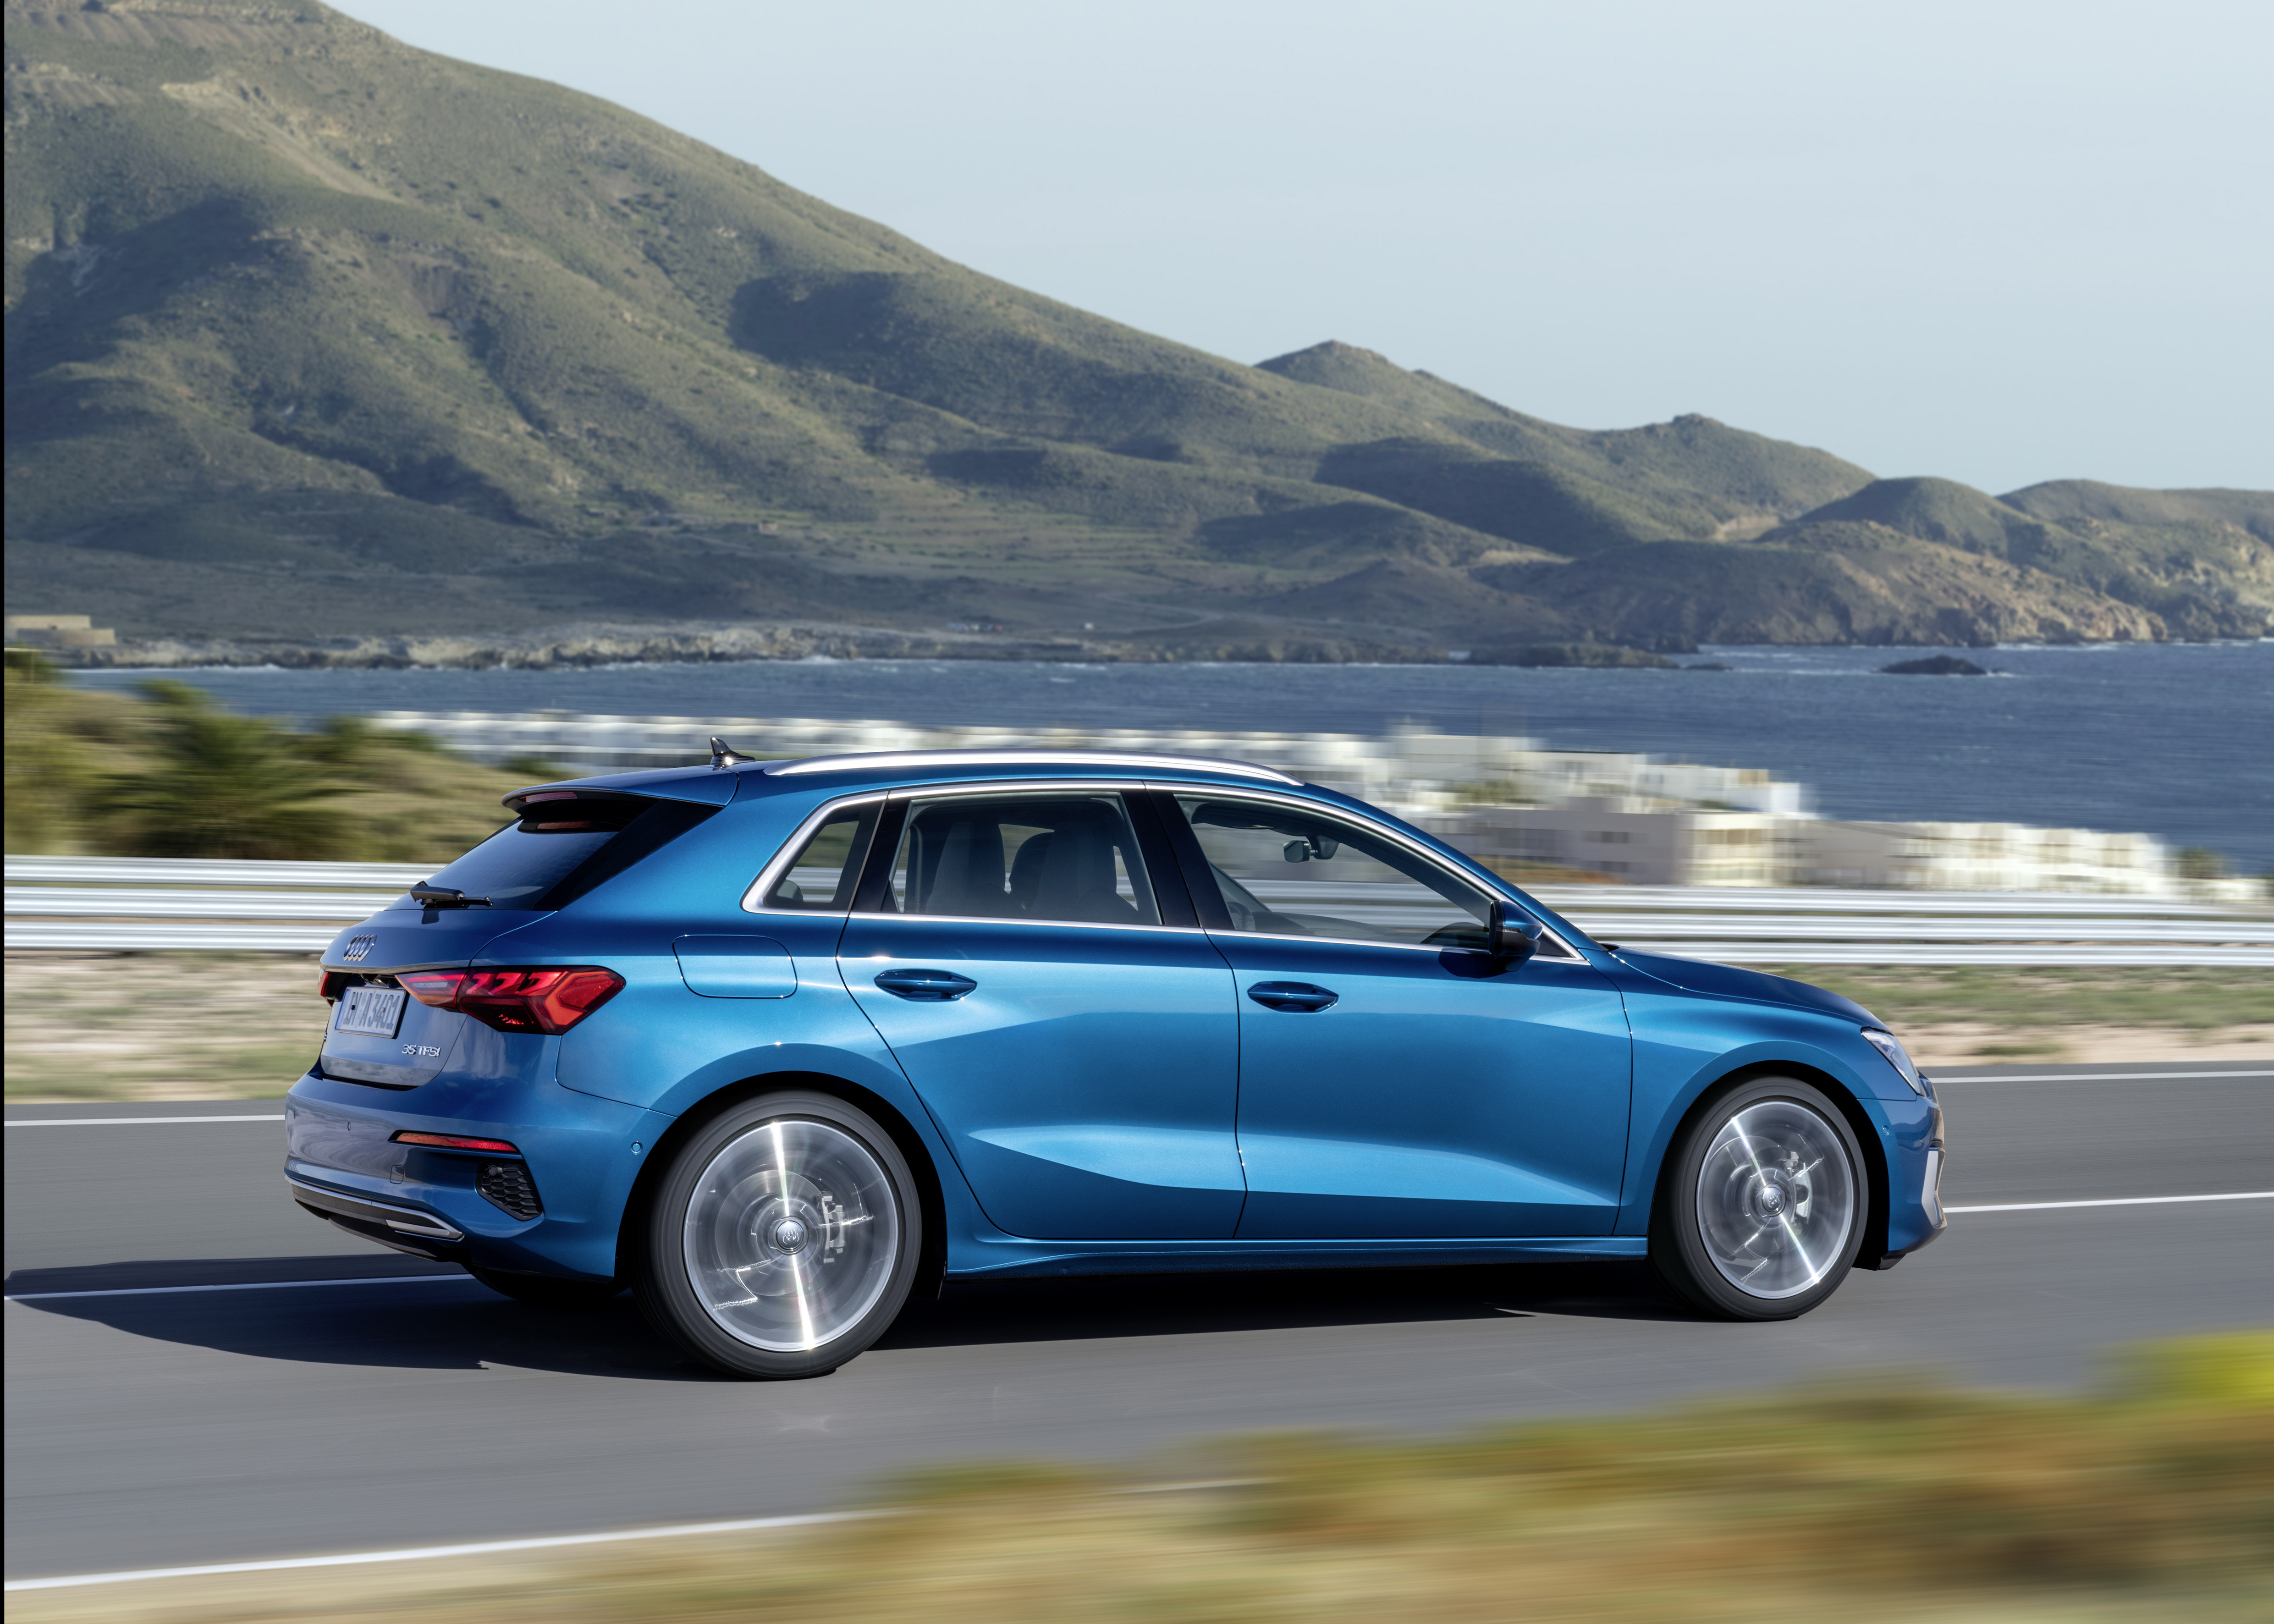 2021 Audi A3 Sportback arrives with new look and tech Audi ...